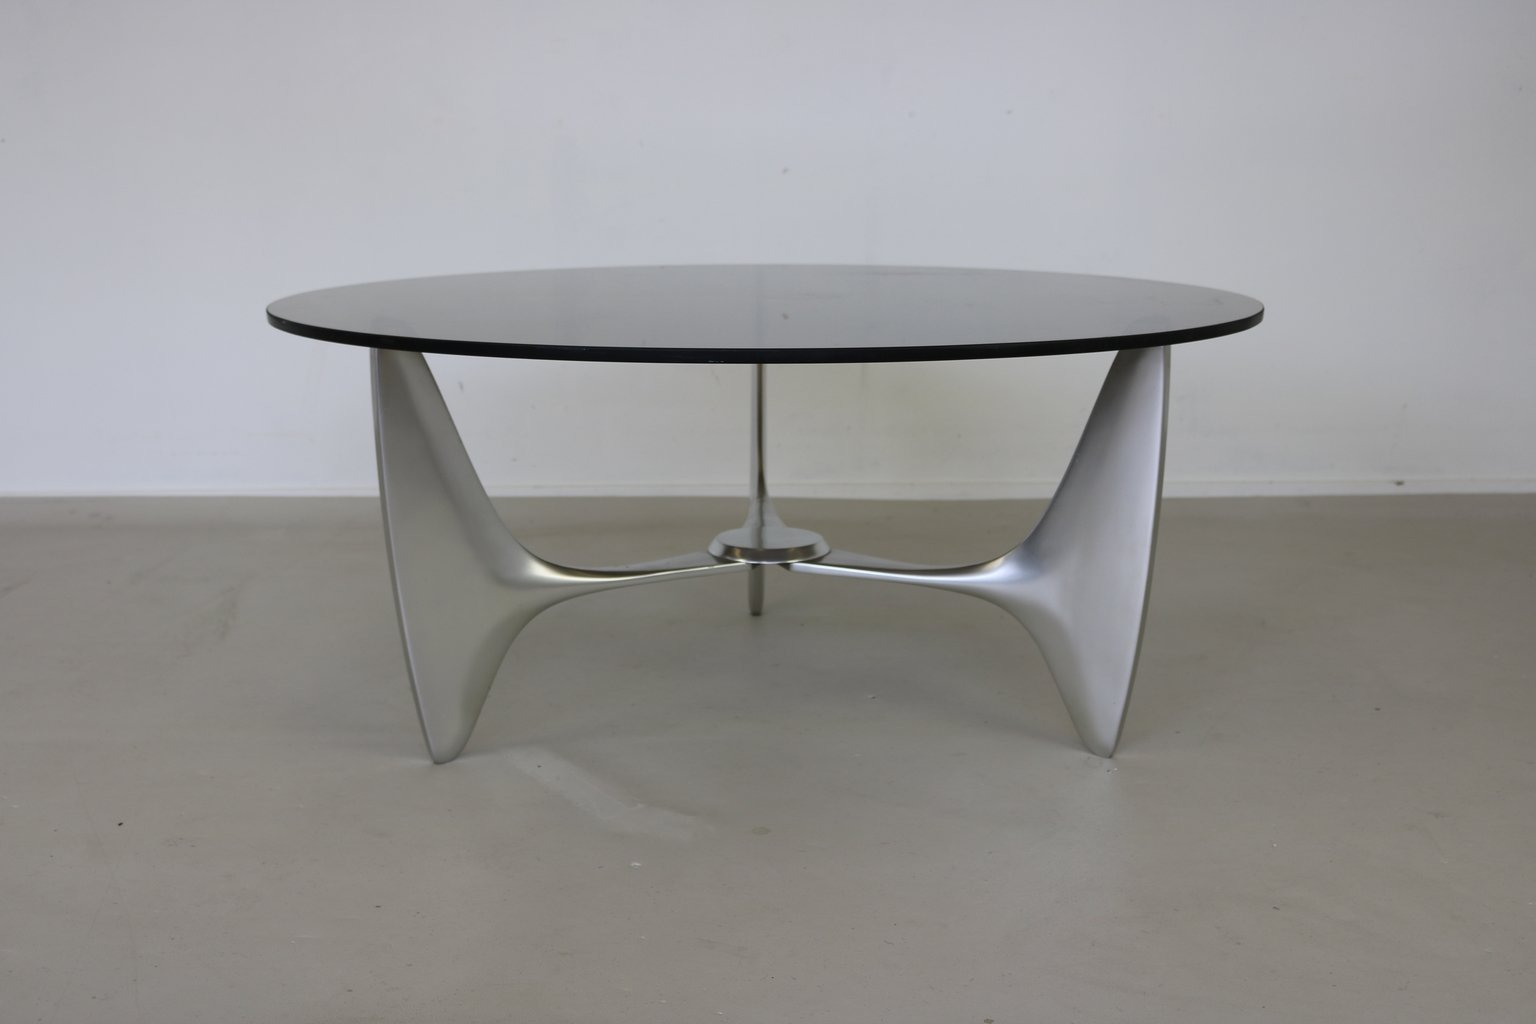 Organically Shaped Cast Aluminium Coffee Table From Ronald Schmitt 1965 For Sale At Pamono